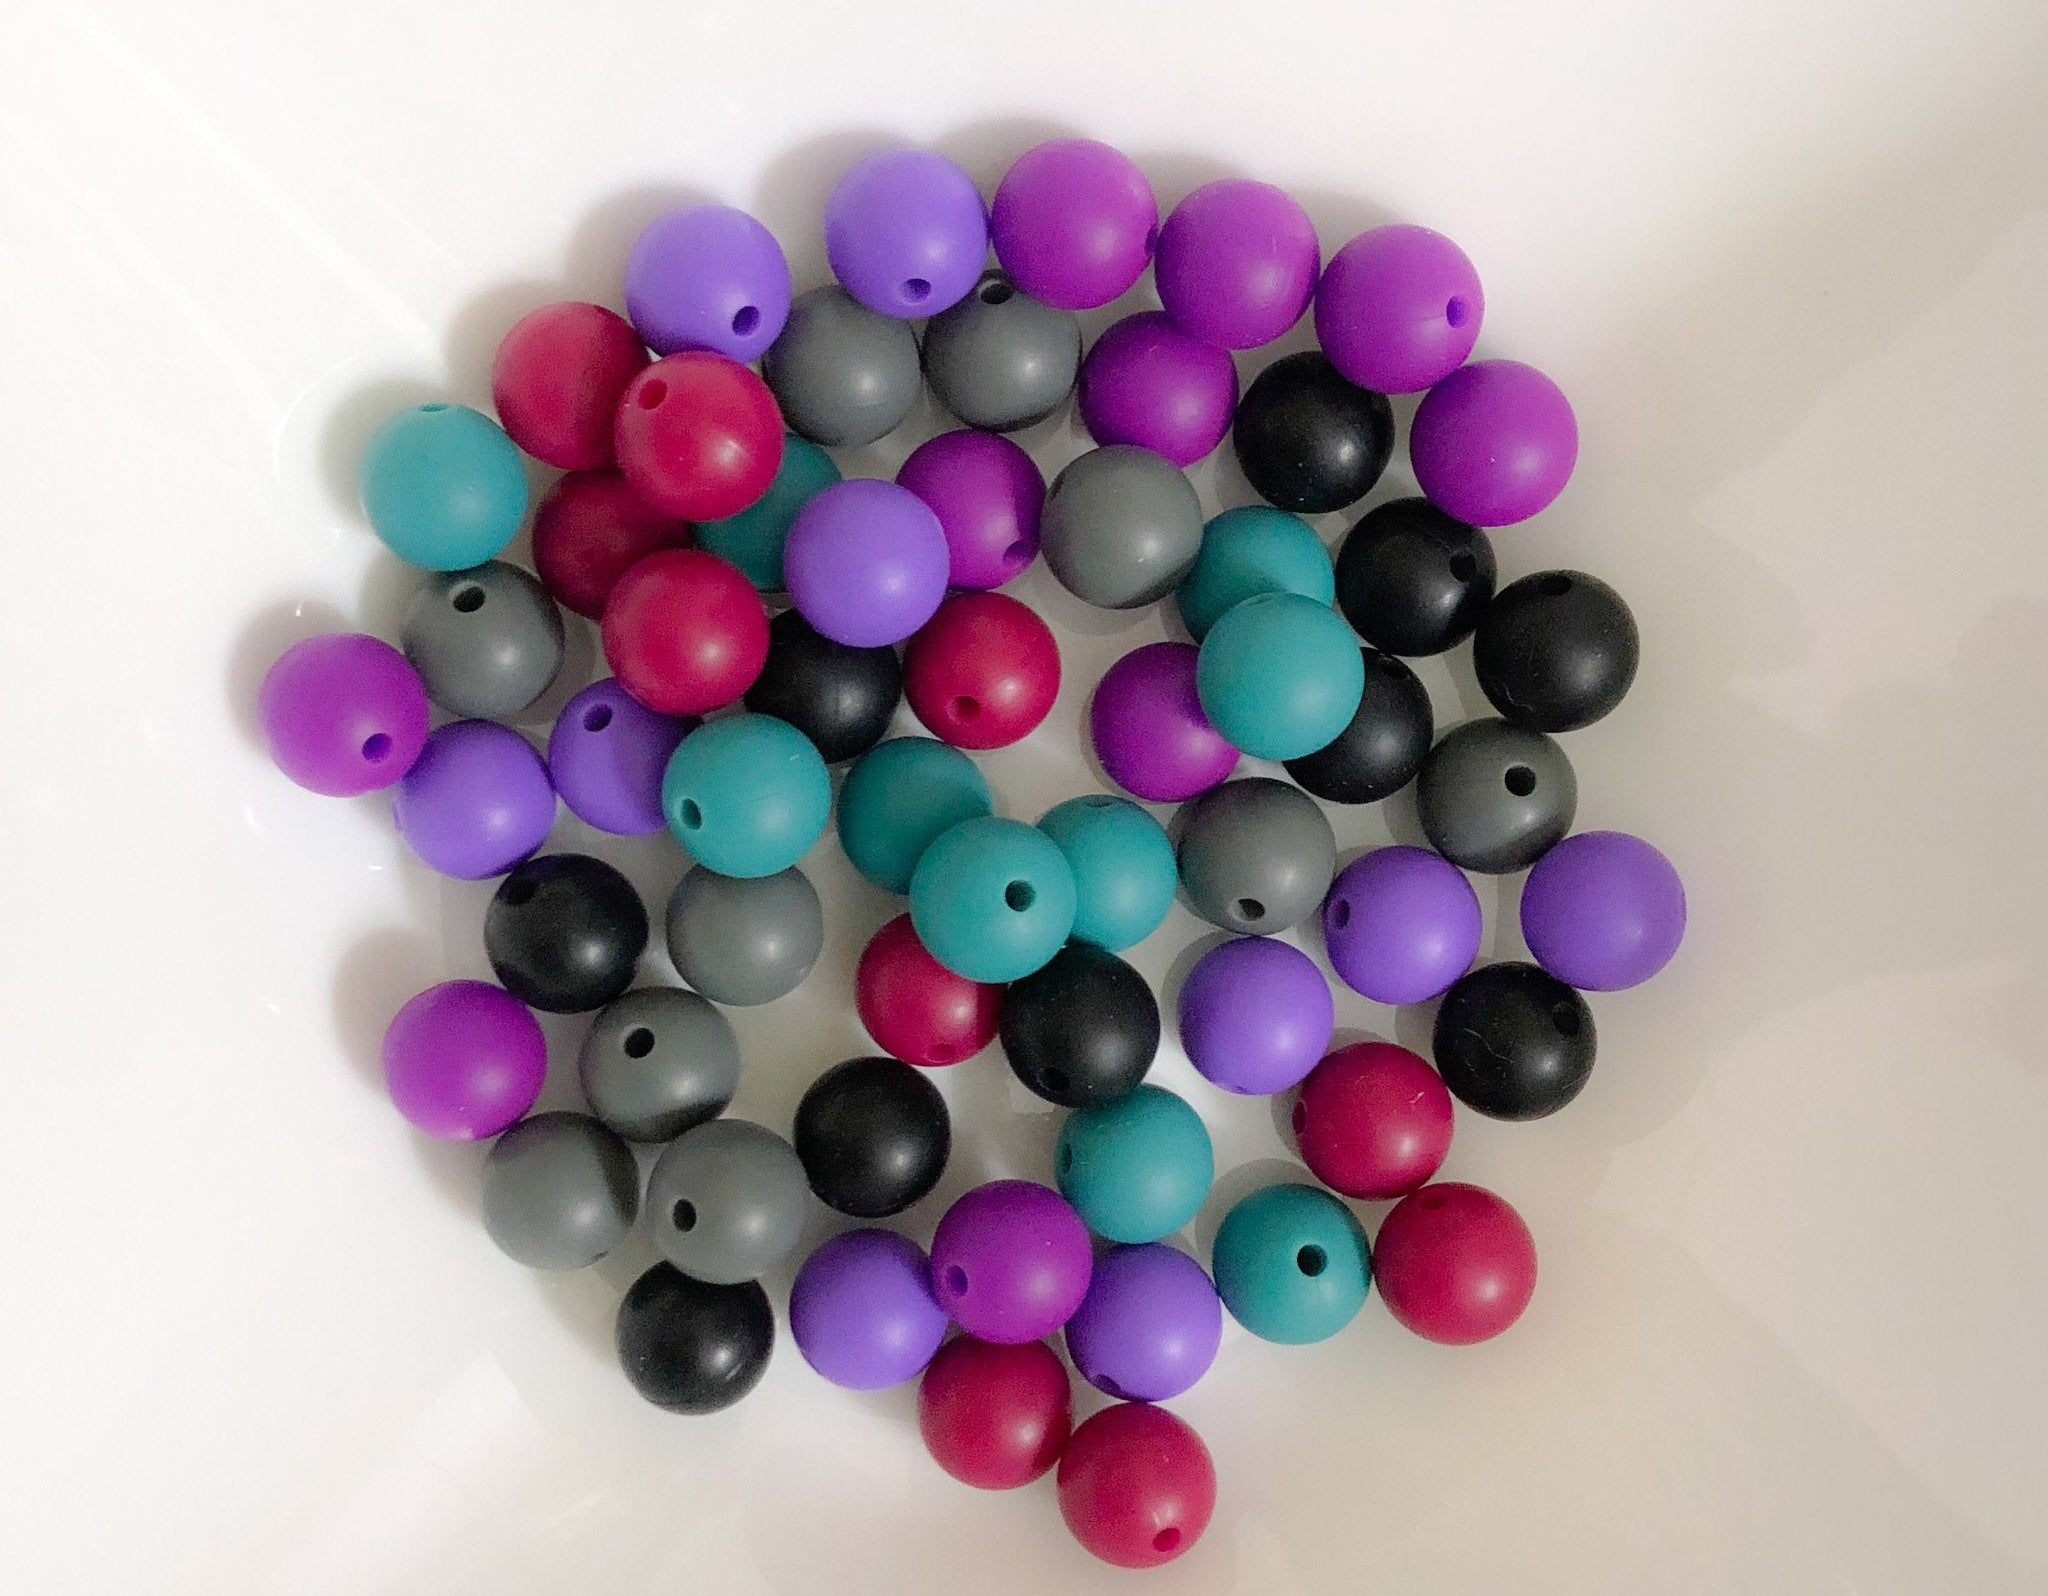 60 Bulk Silicone Teething Beads - Mulberry Tea - Licorice, Steel, Black, Plum, Merlot, Lilac - Bulk Silicone Beads Wholesale